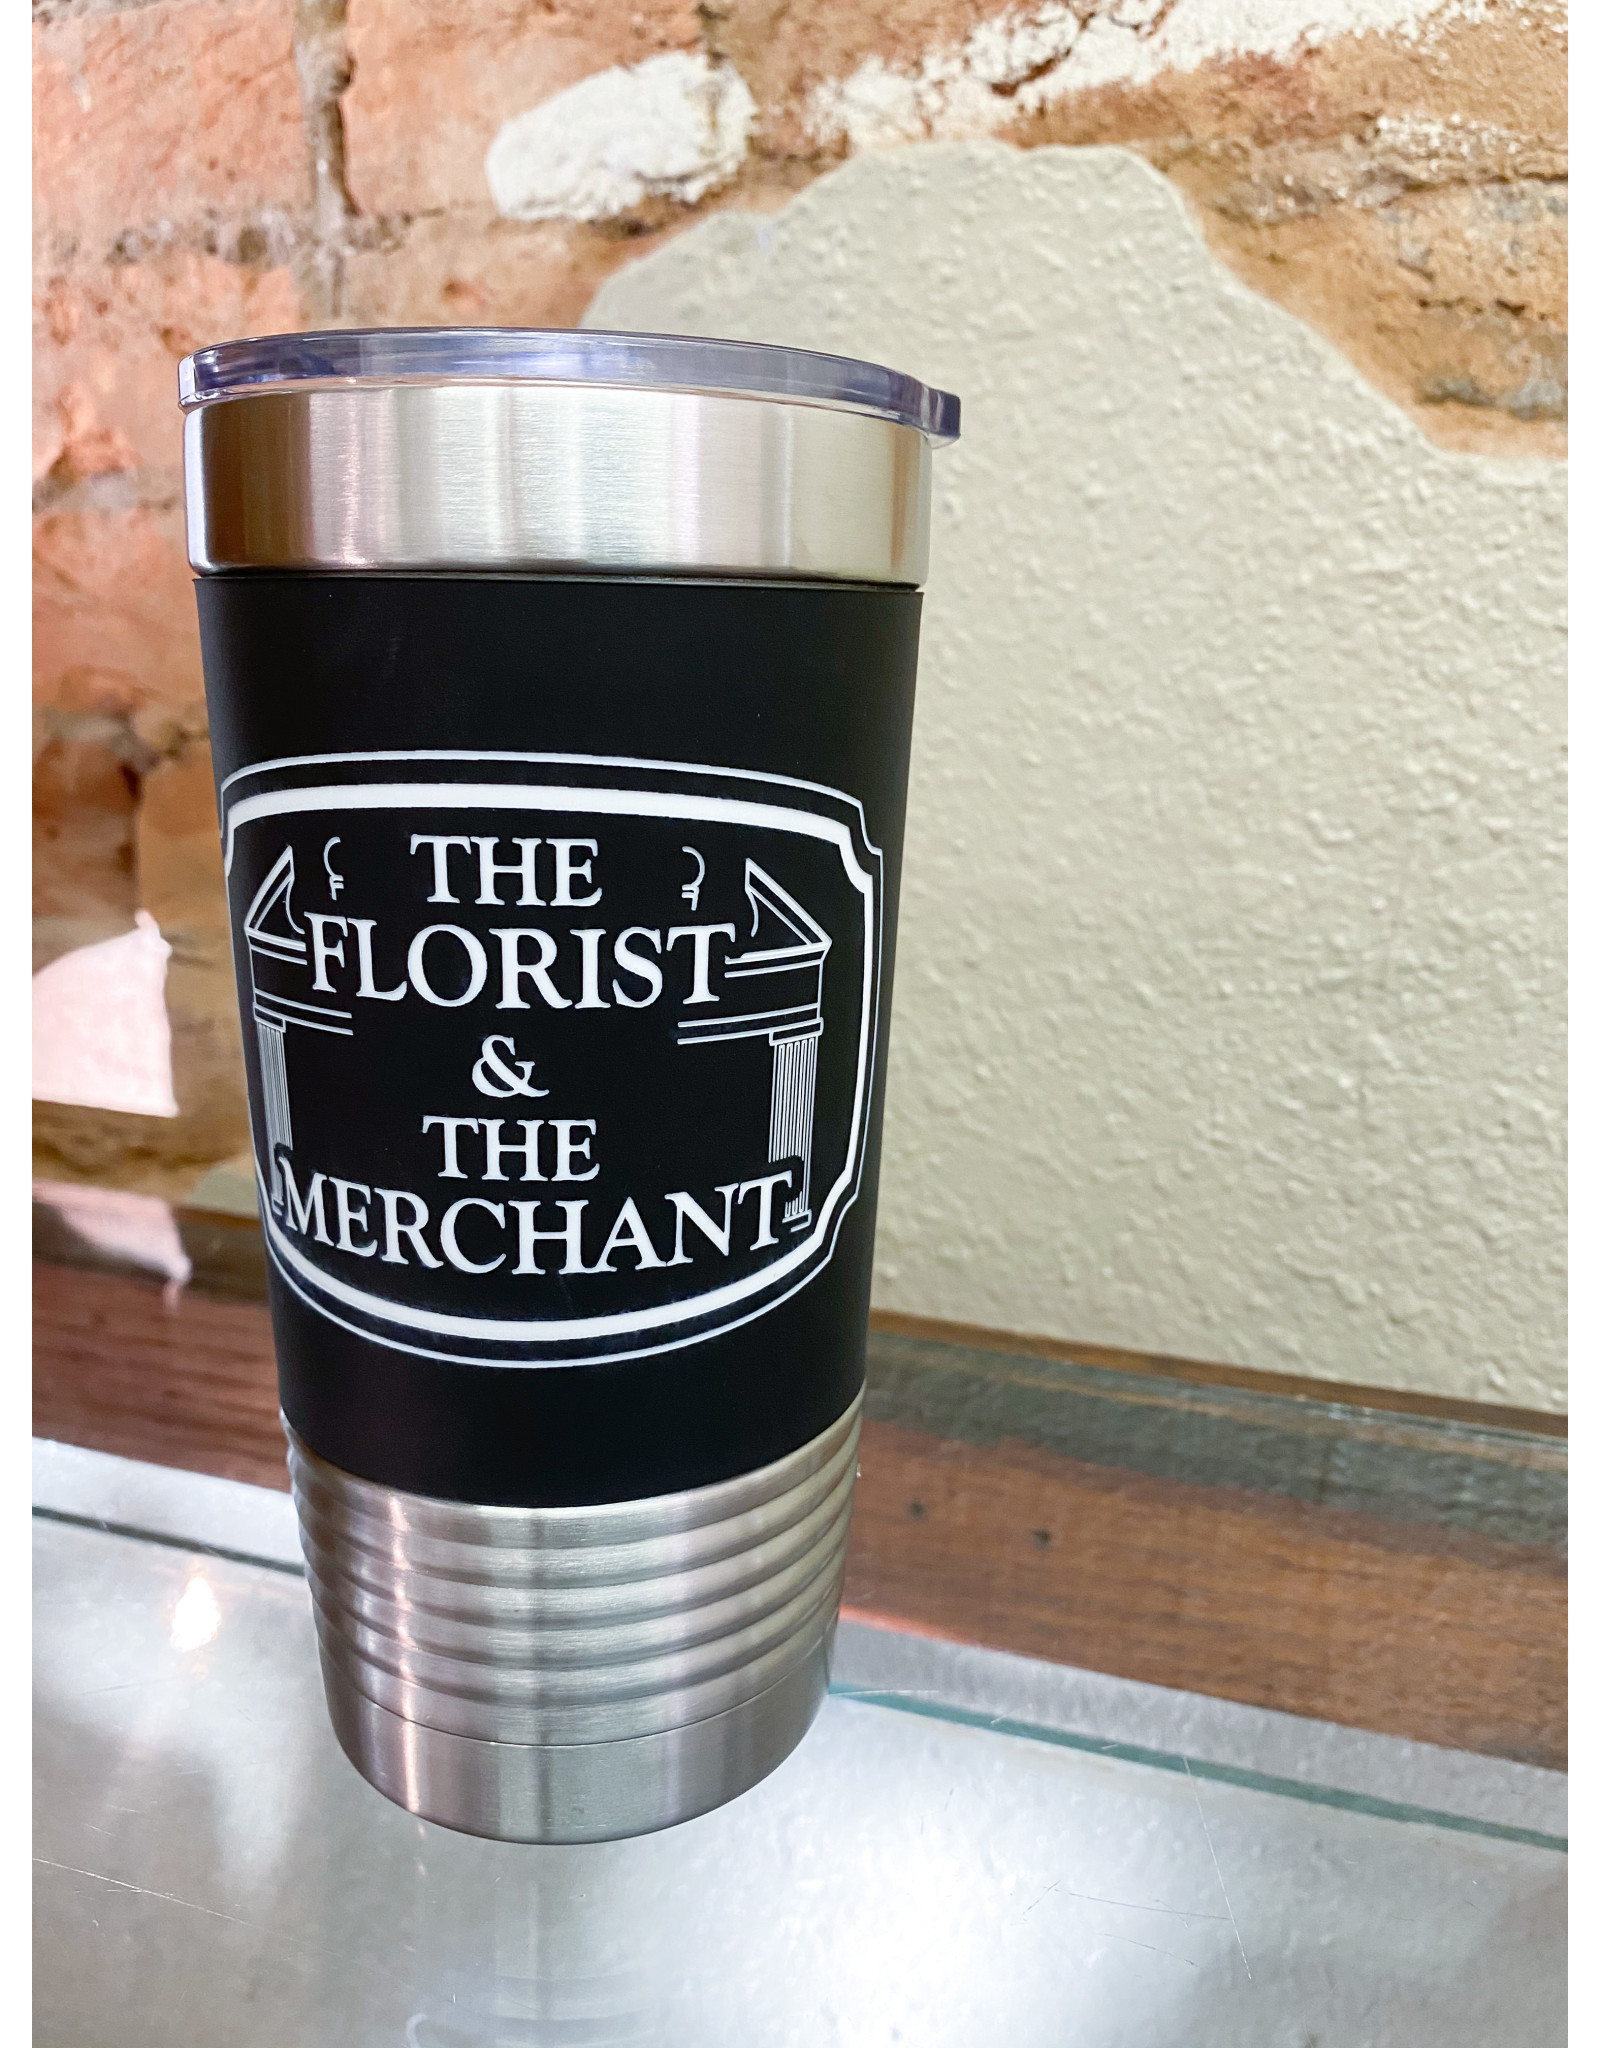 The Florist & The Merchant 20 oz Insulated Silicone Cup - black